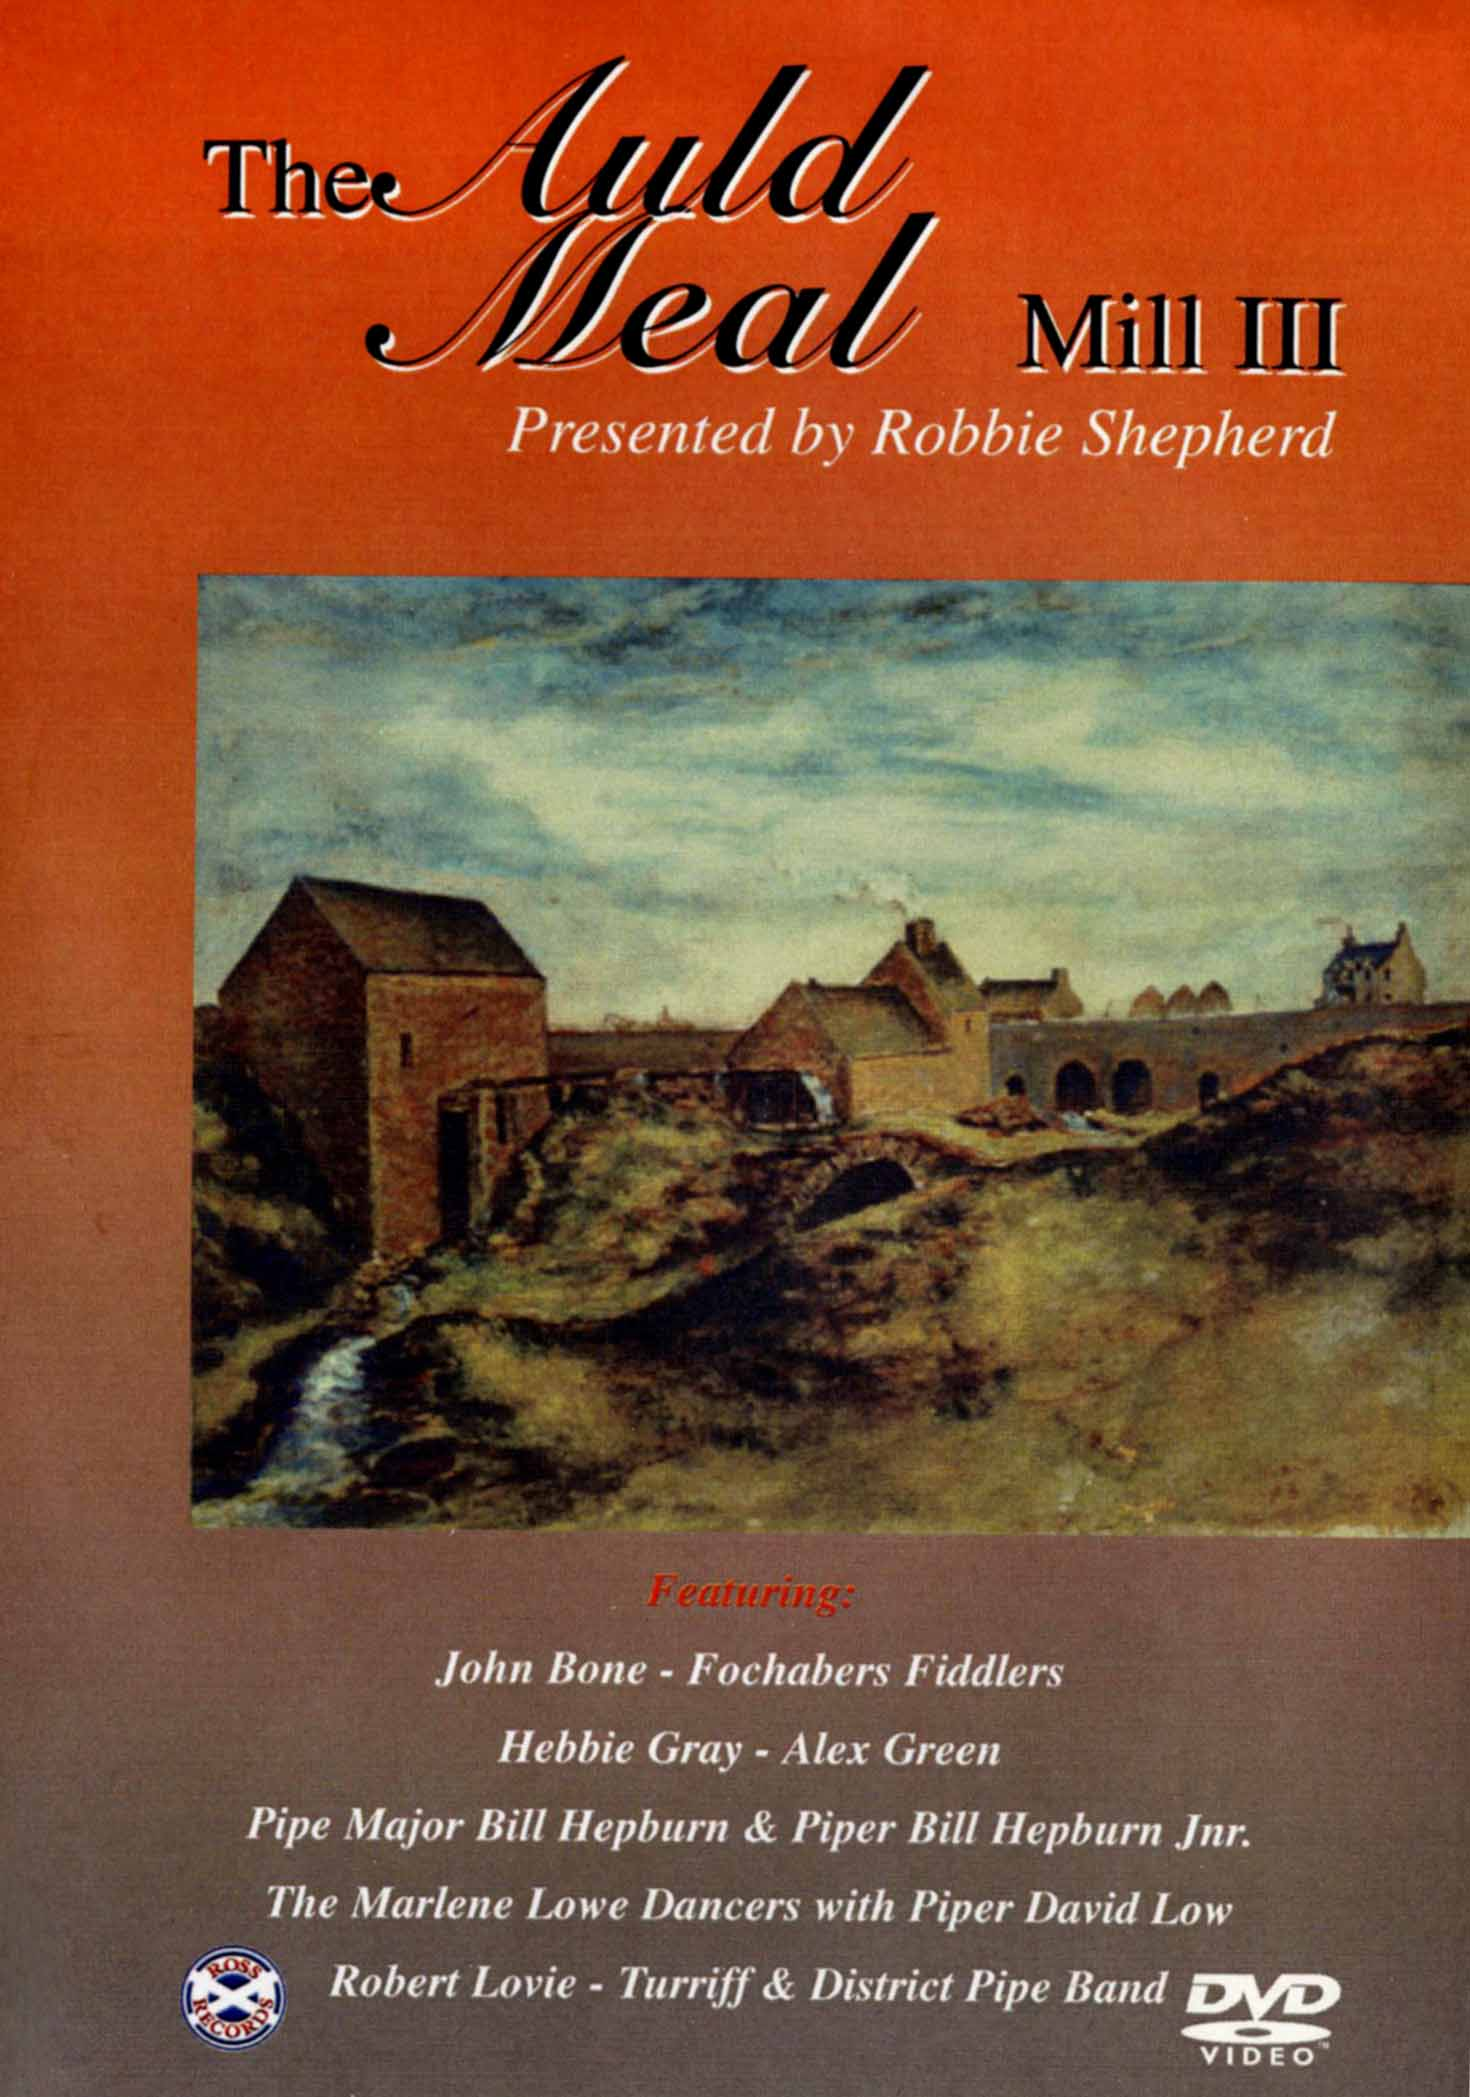 The Auld Meal: Mill III